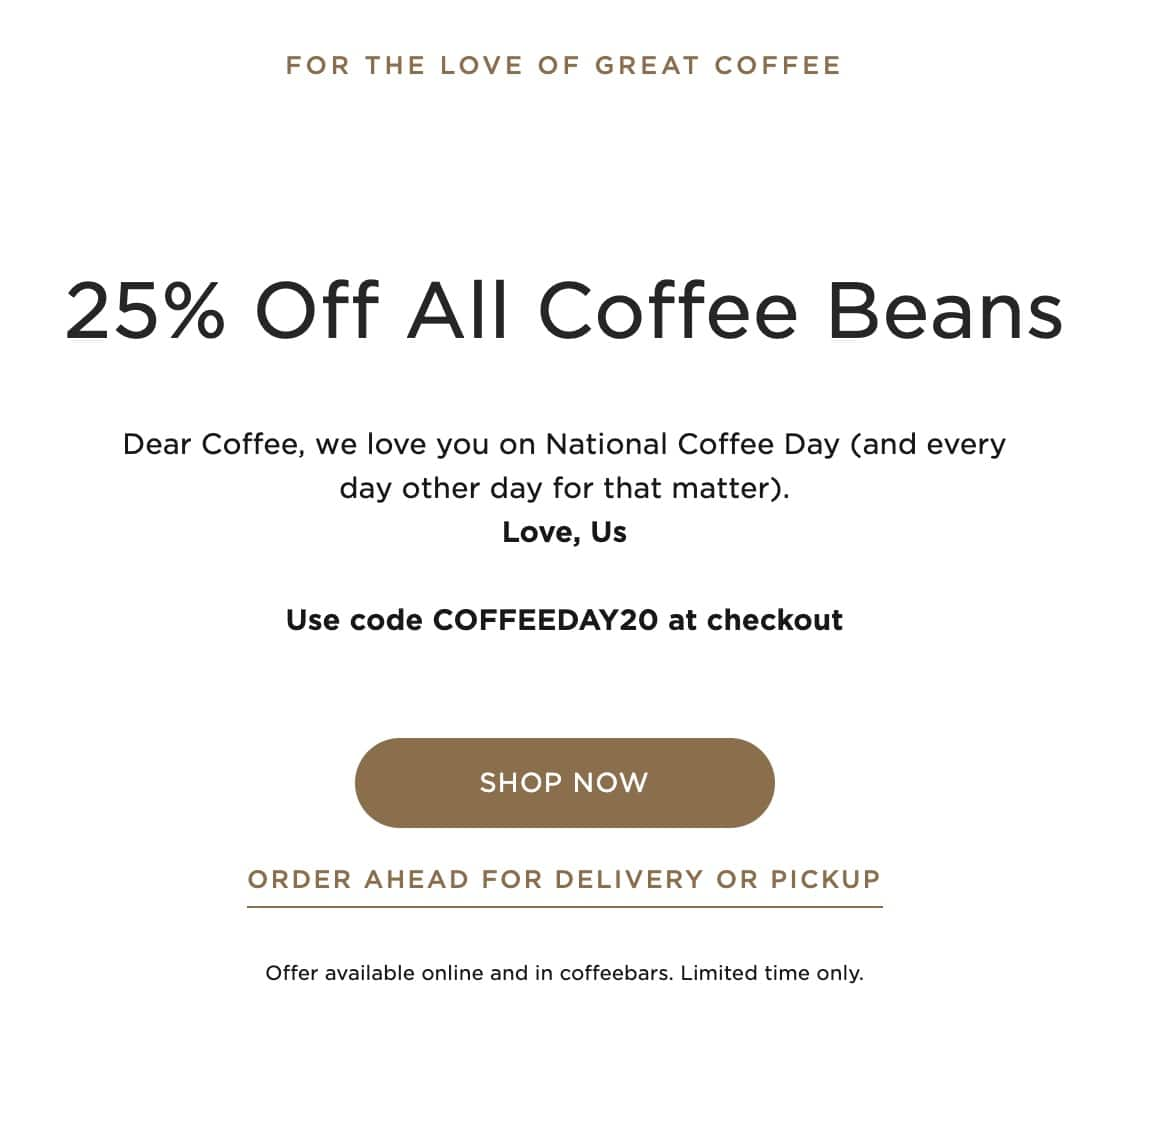 Peet's Coffee 25% off all coffee beans for National Coffee Day